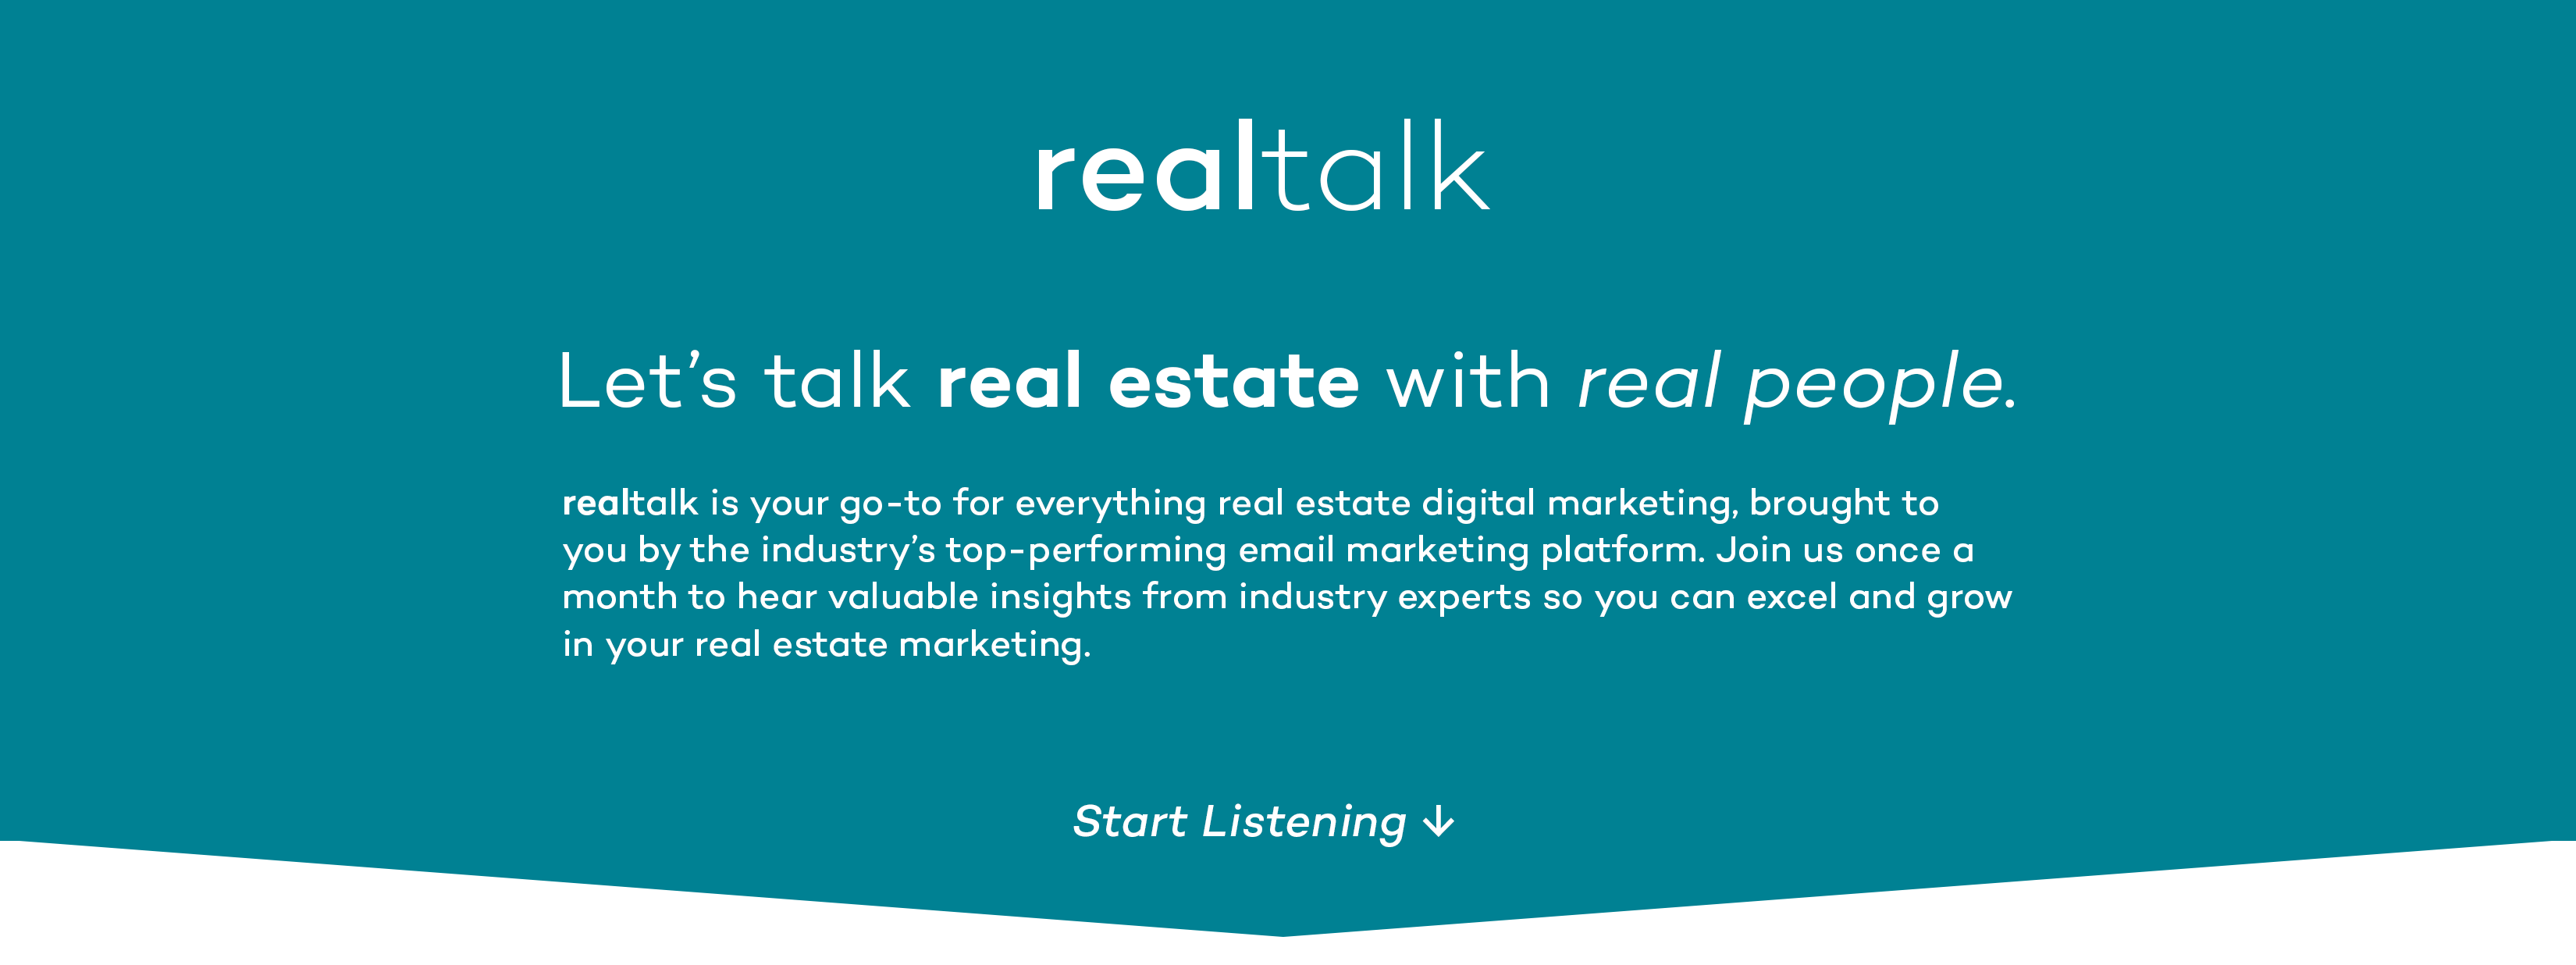 realtalk: real estate with real people